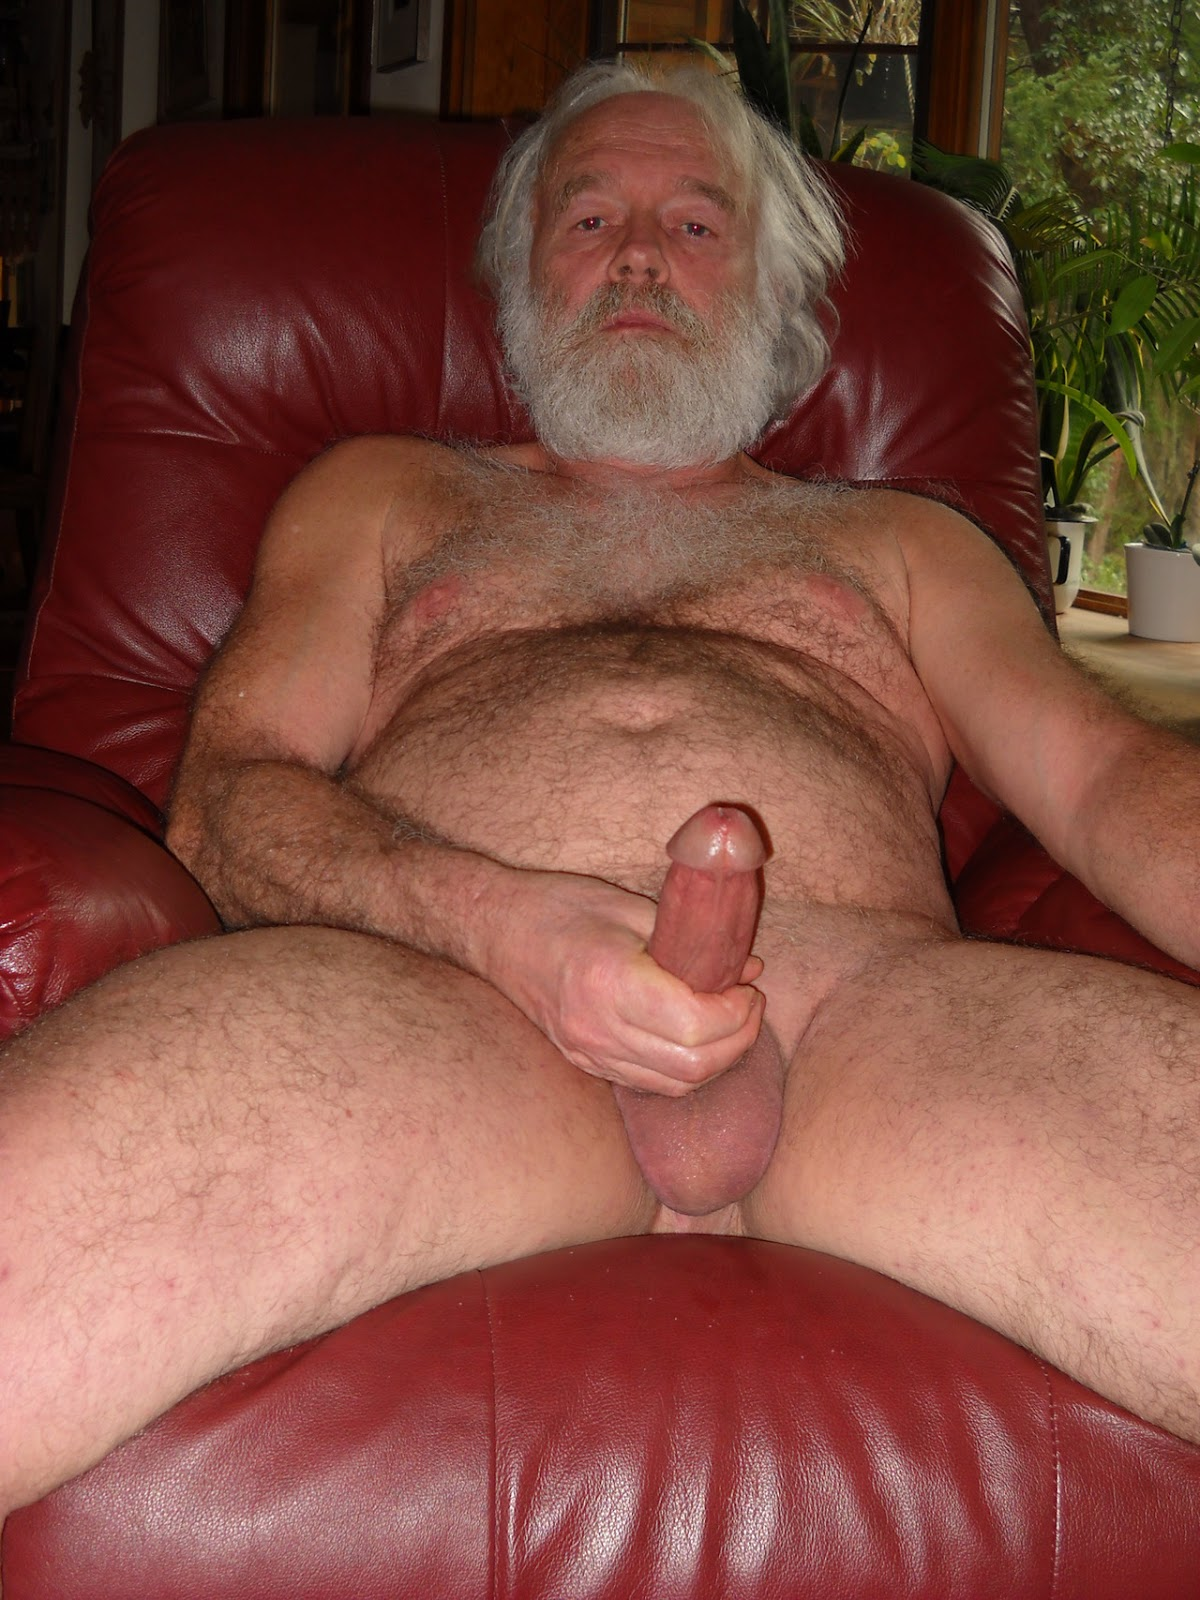 grizzly kinky oldermen - gay silver daddies oldermen - gay silver and polar bears daddys